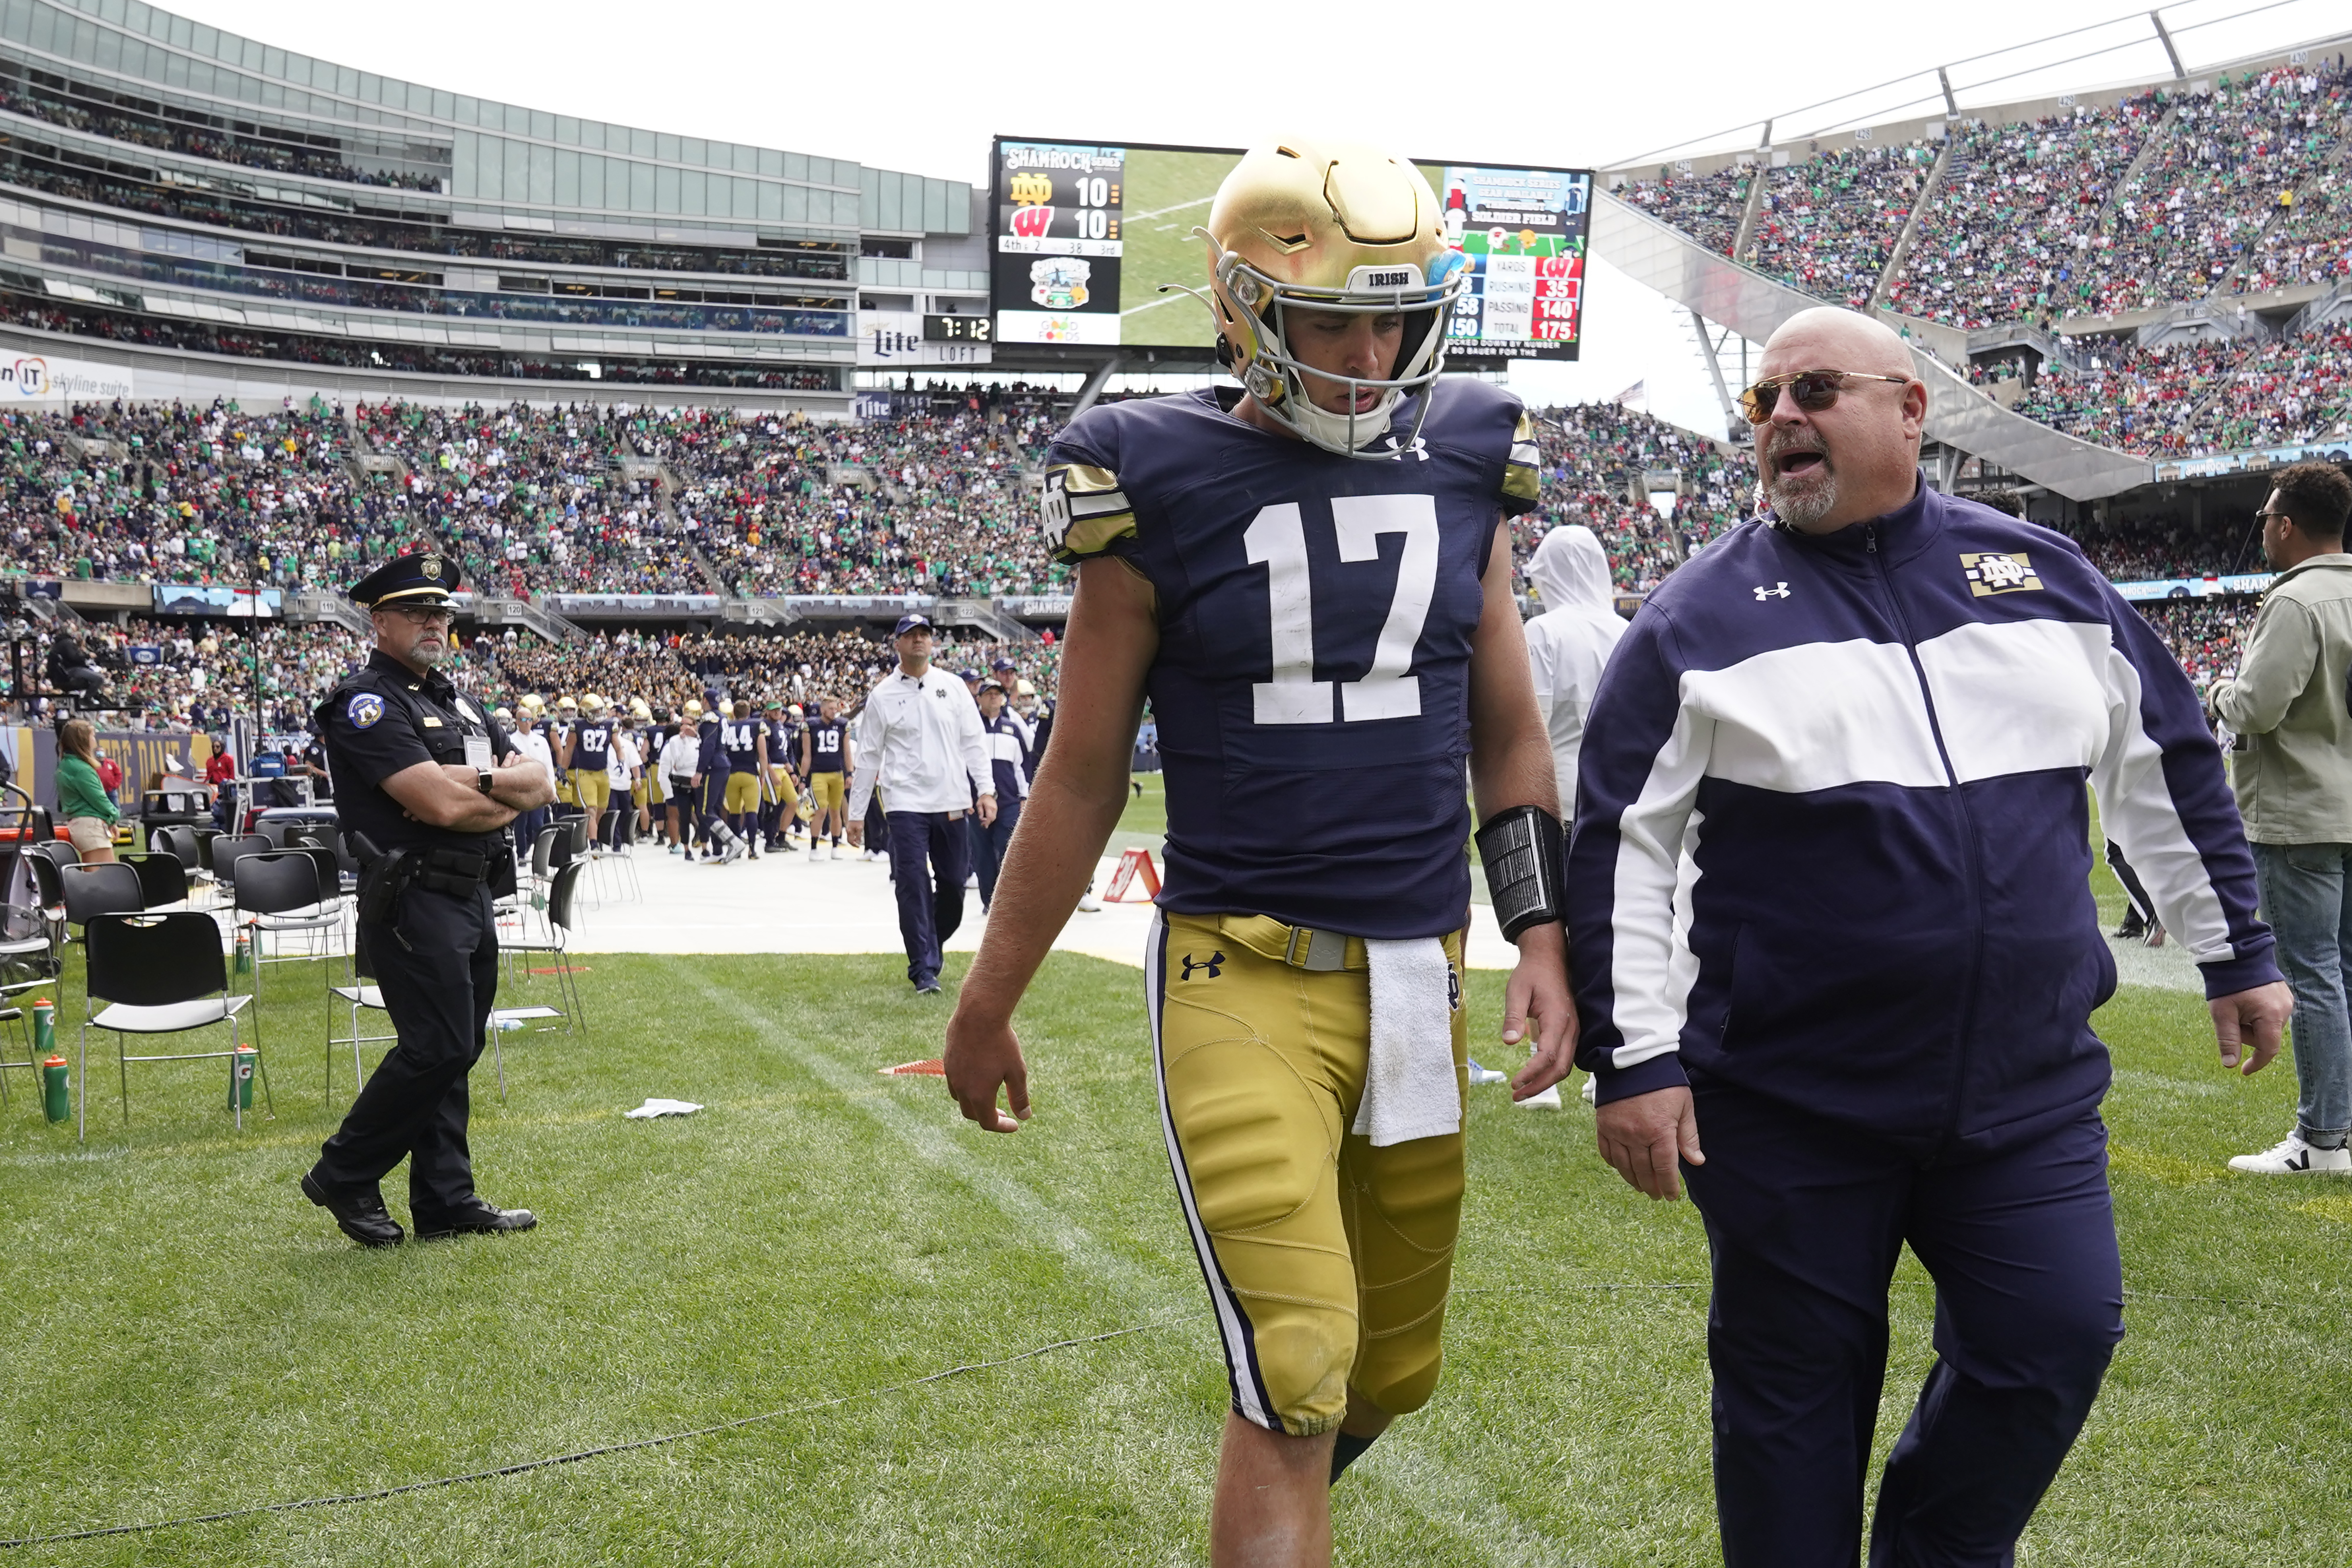 Notre Dame quarterback Jack Coan heads to the locker room after an injury during the second half of Saturday's game against Wisconsin at Soldier Field.